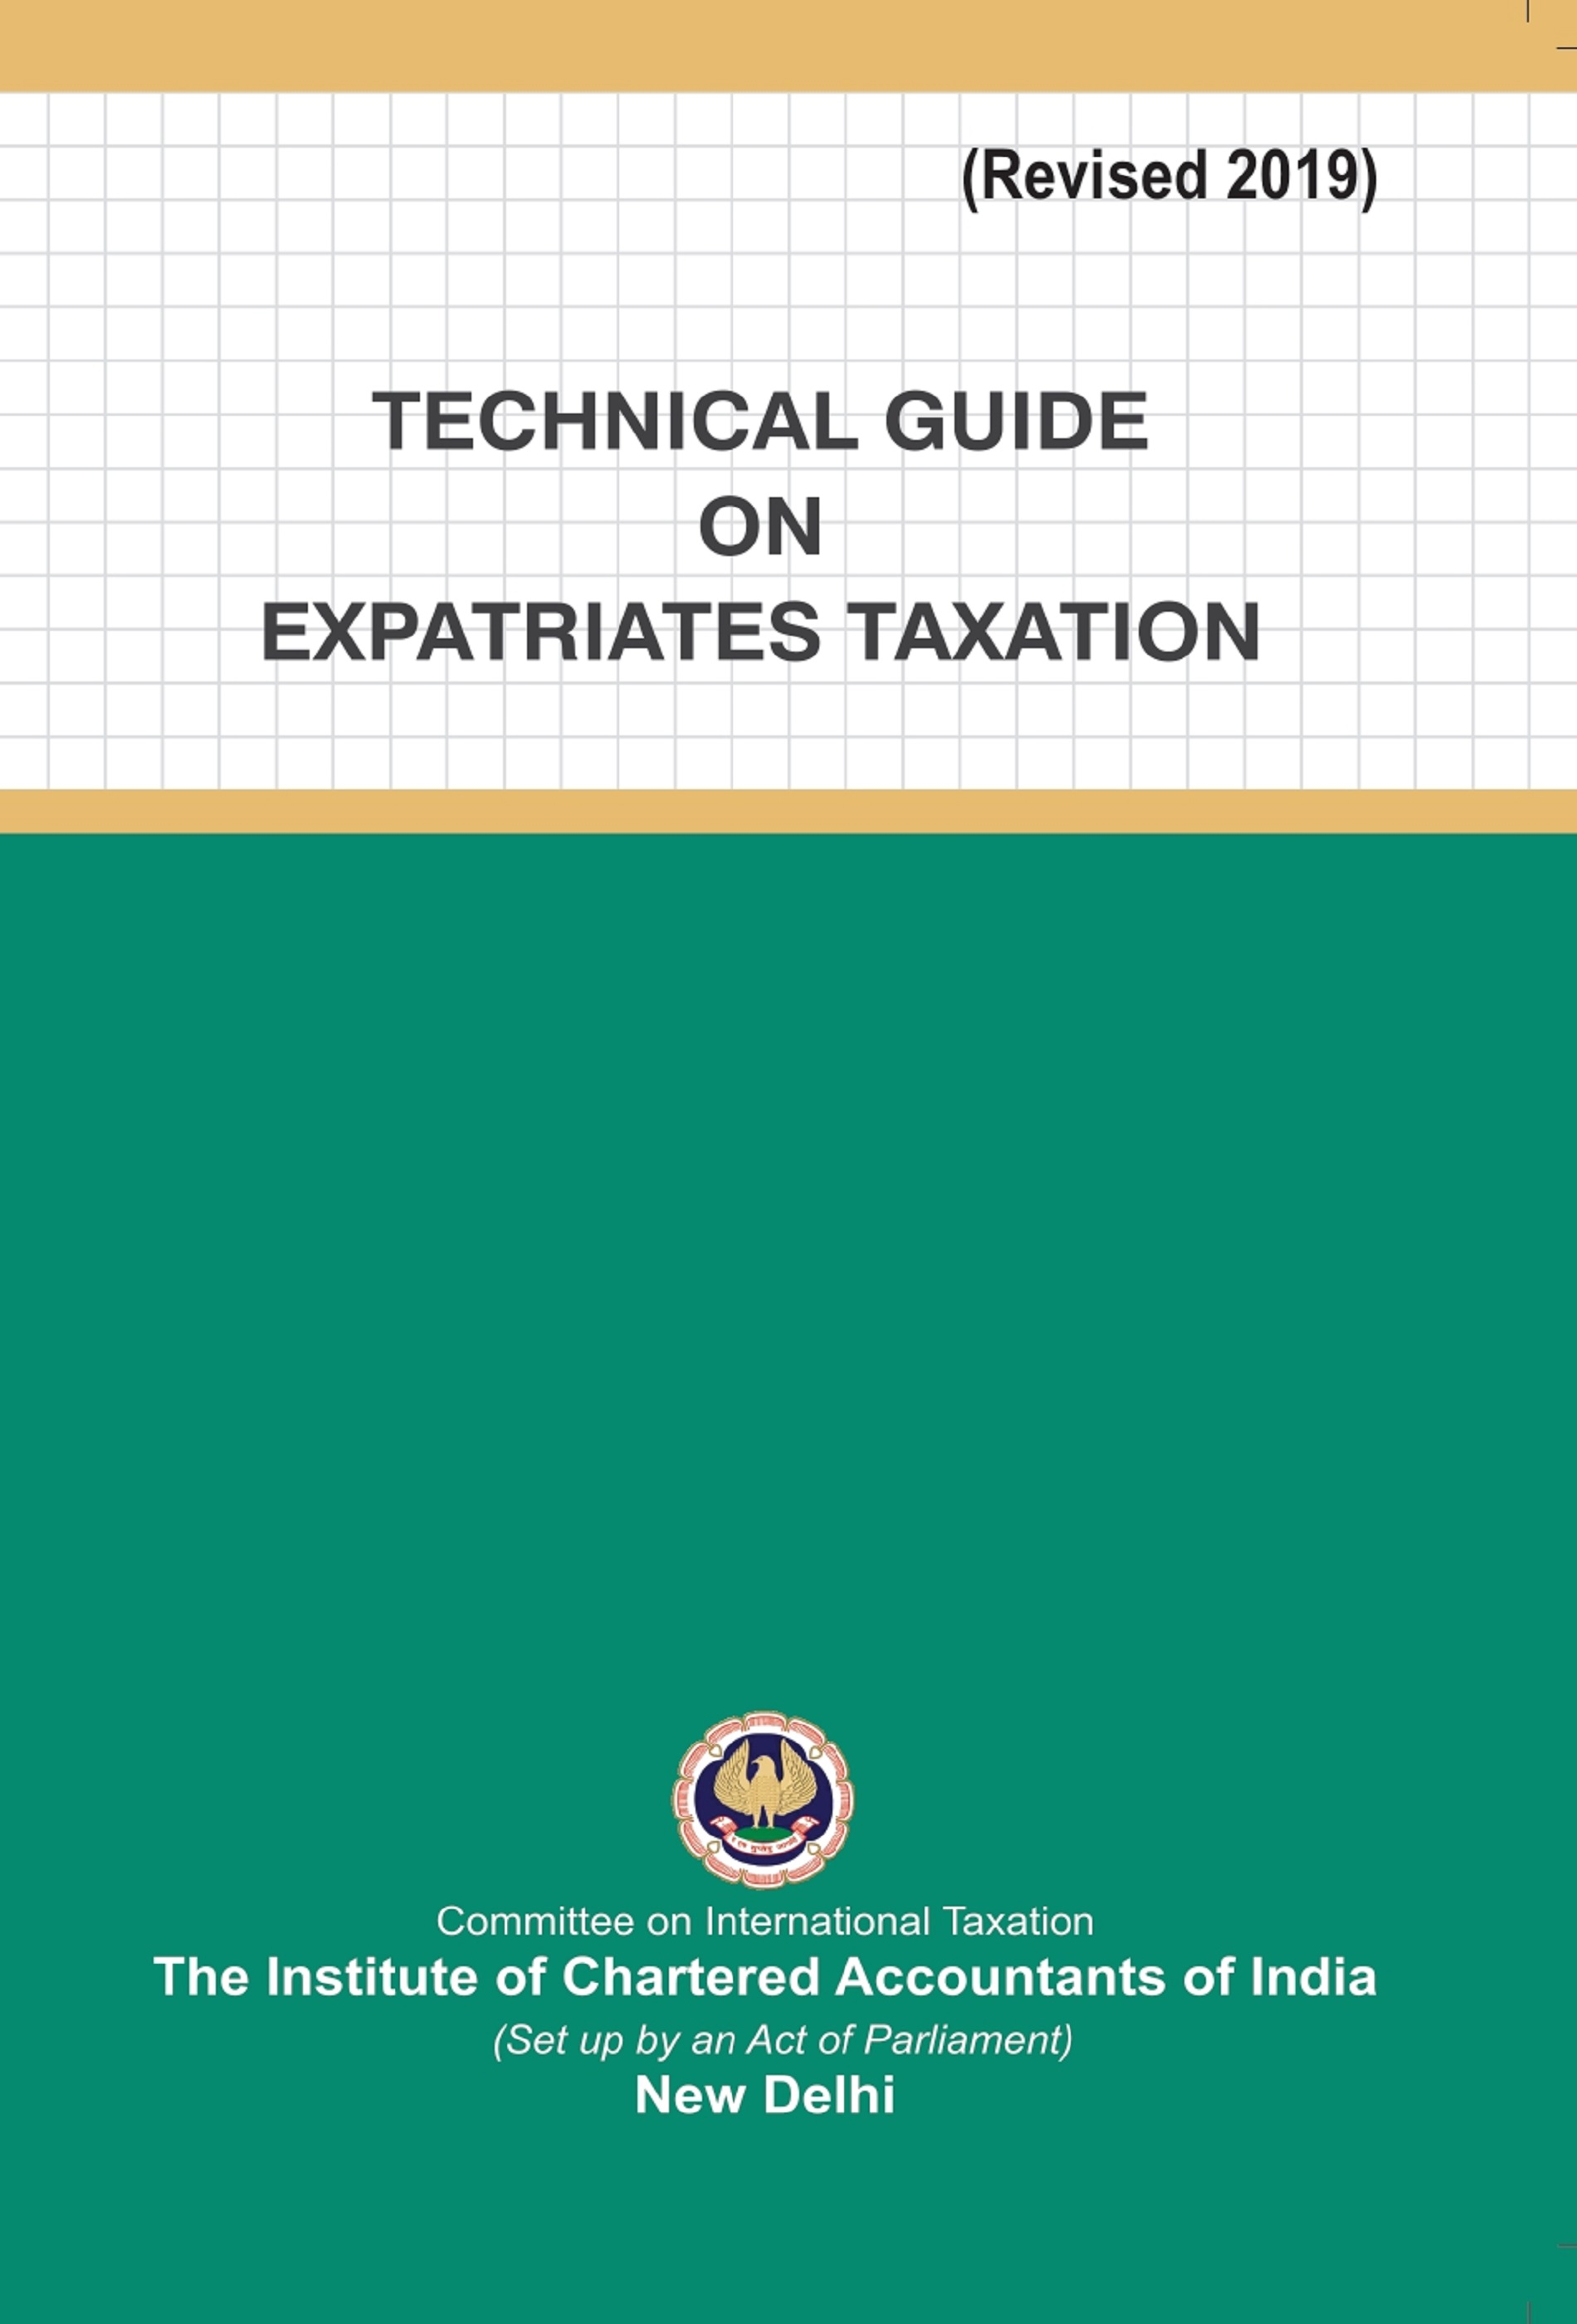 Technical Guide on Expatriates Taxation (Revised 2019)